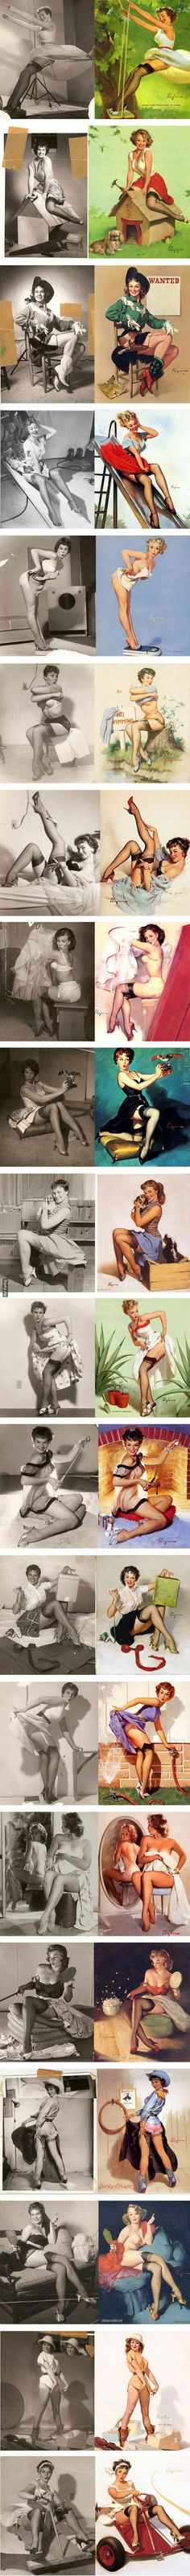 The real life models who posed for some of the most iconic and beautiful mid-century pinup illustrations.